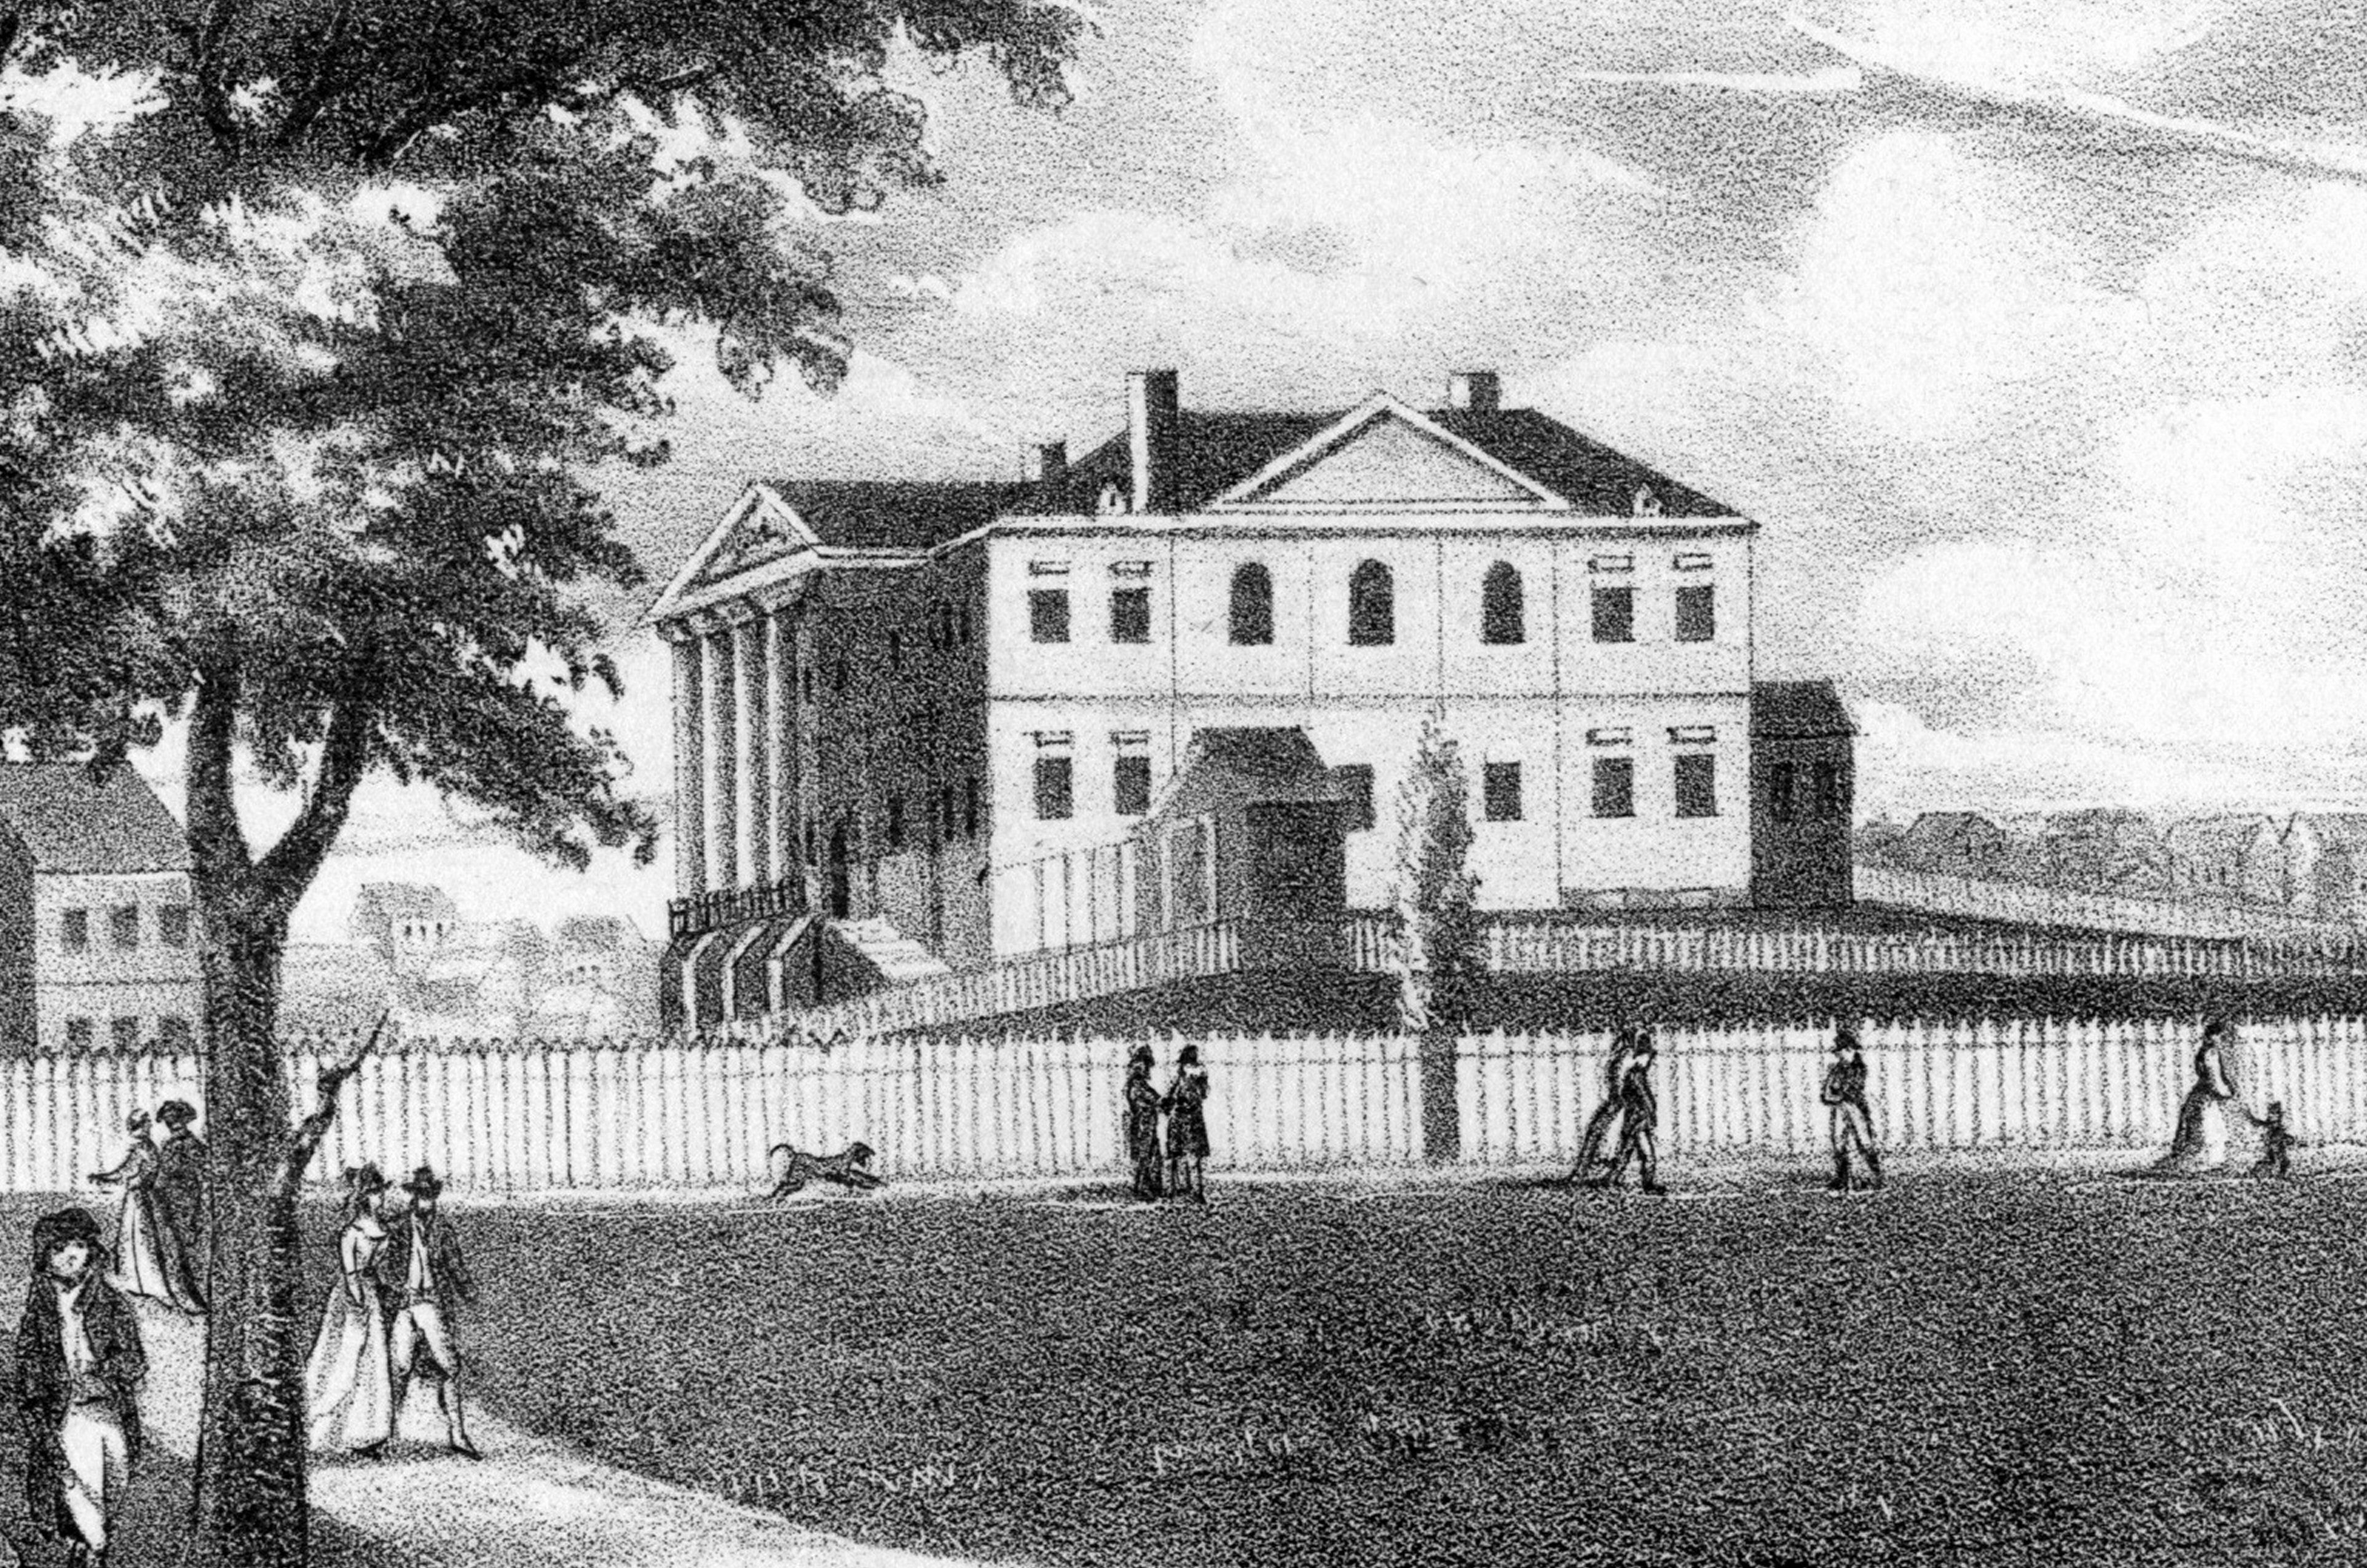 An etching from a painting depicting the Government House in New York, constructed in 1790 to serve as an executive mansion for President George Washington